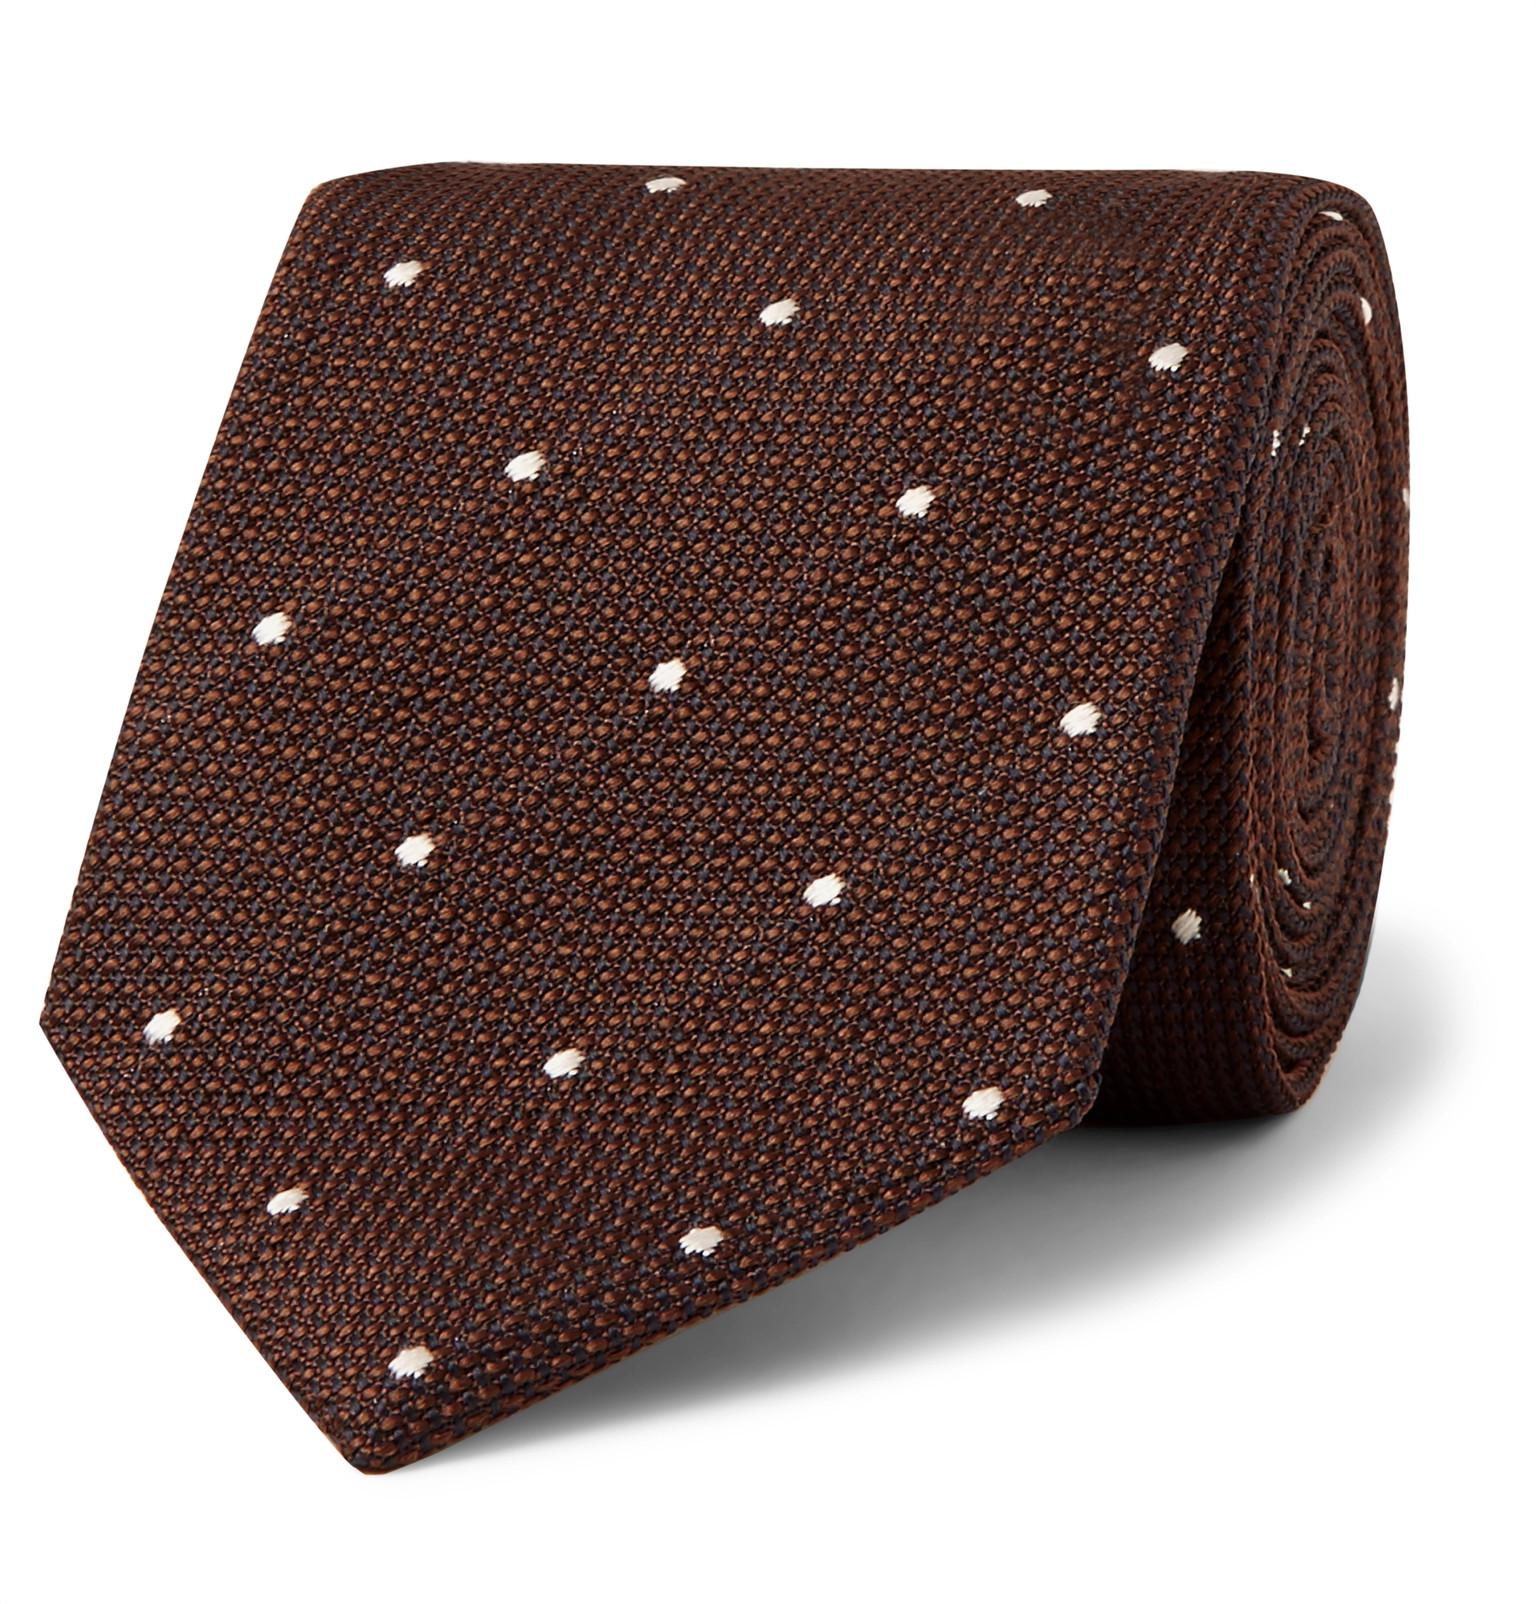 8cm Dogtooth Silk-jacquard Tie Kingsman Buy Cheap Shop Offer Enjoy For Sale Buy Cheap Latest Collections F75ka0Hv